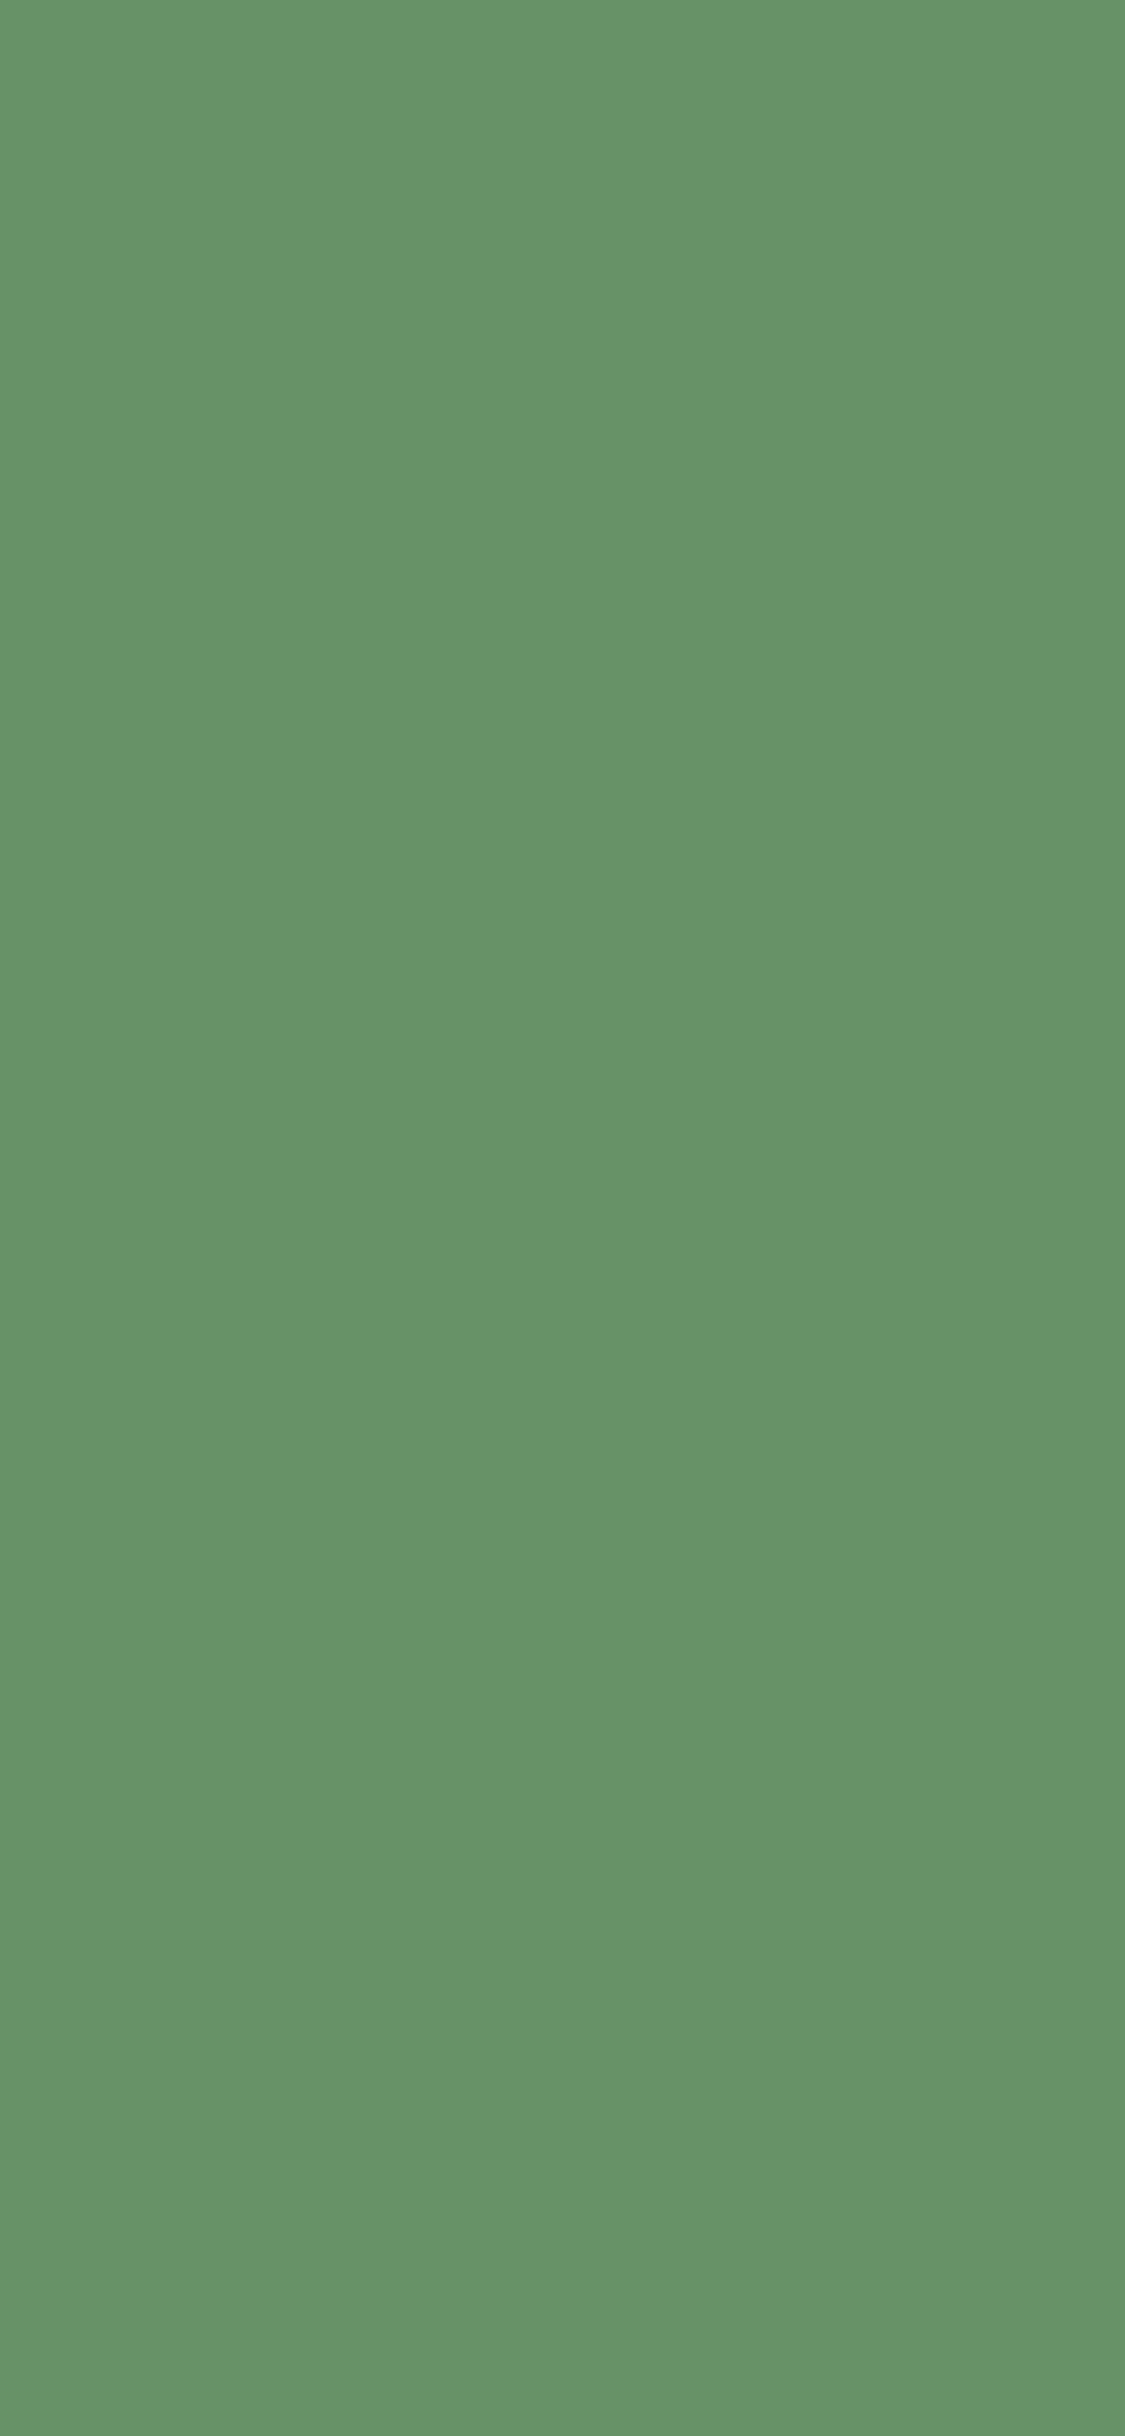 1125x2436 Russian Green Solid Color Background